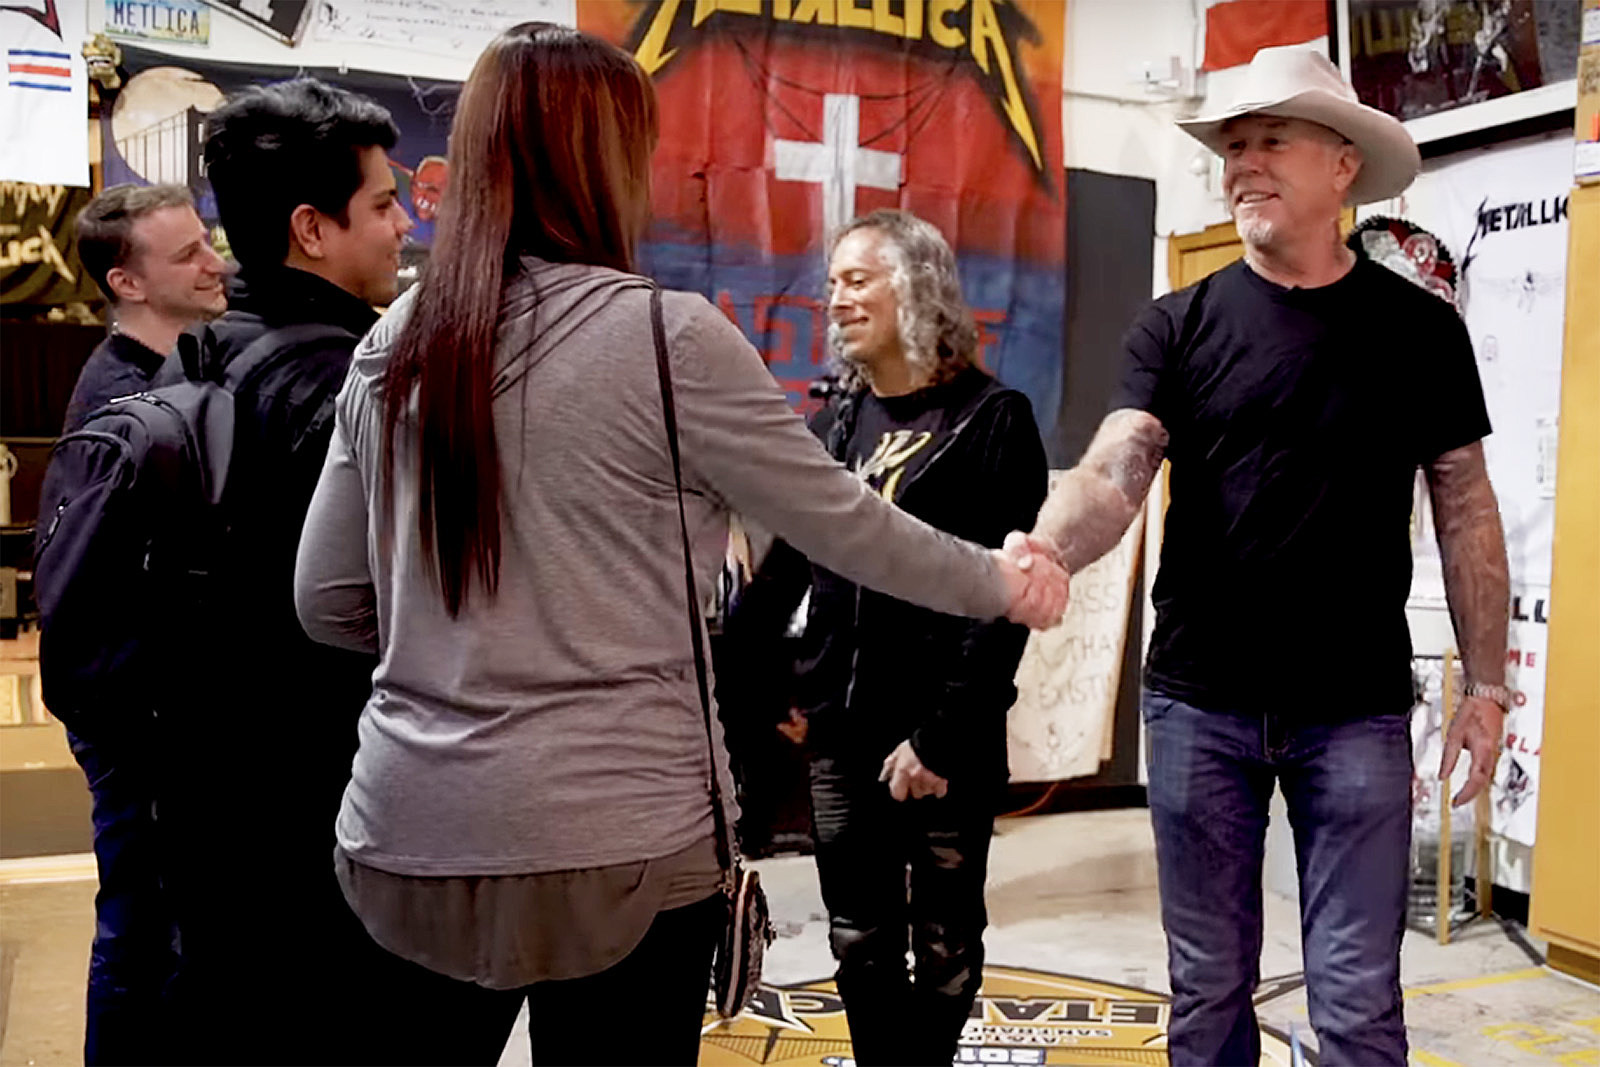 Watch Metallica Give Fans a Tour of Their HQ